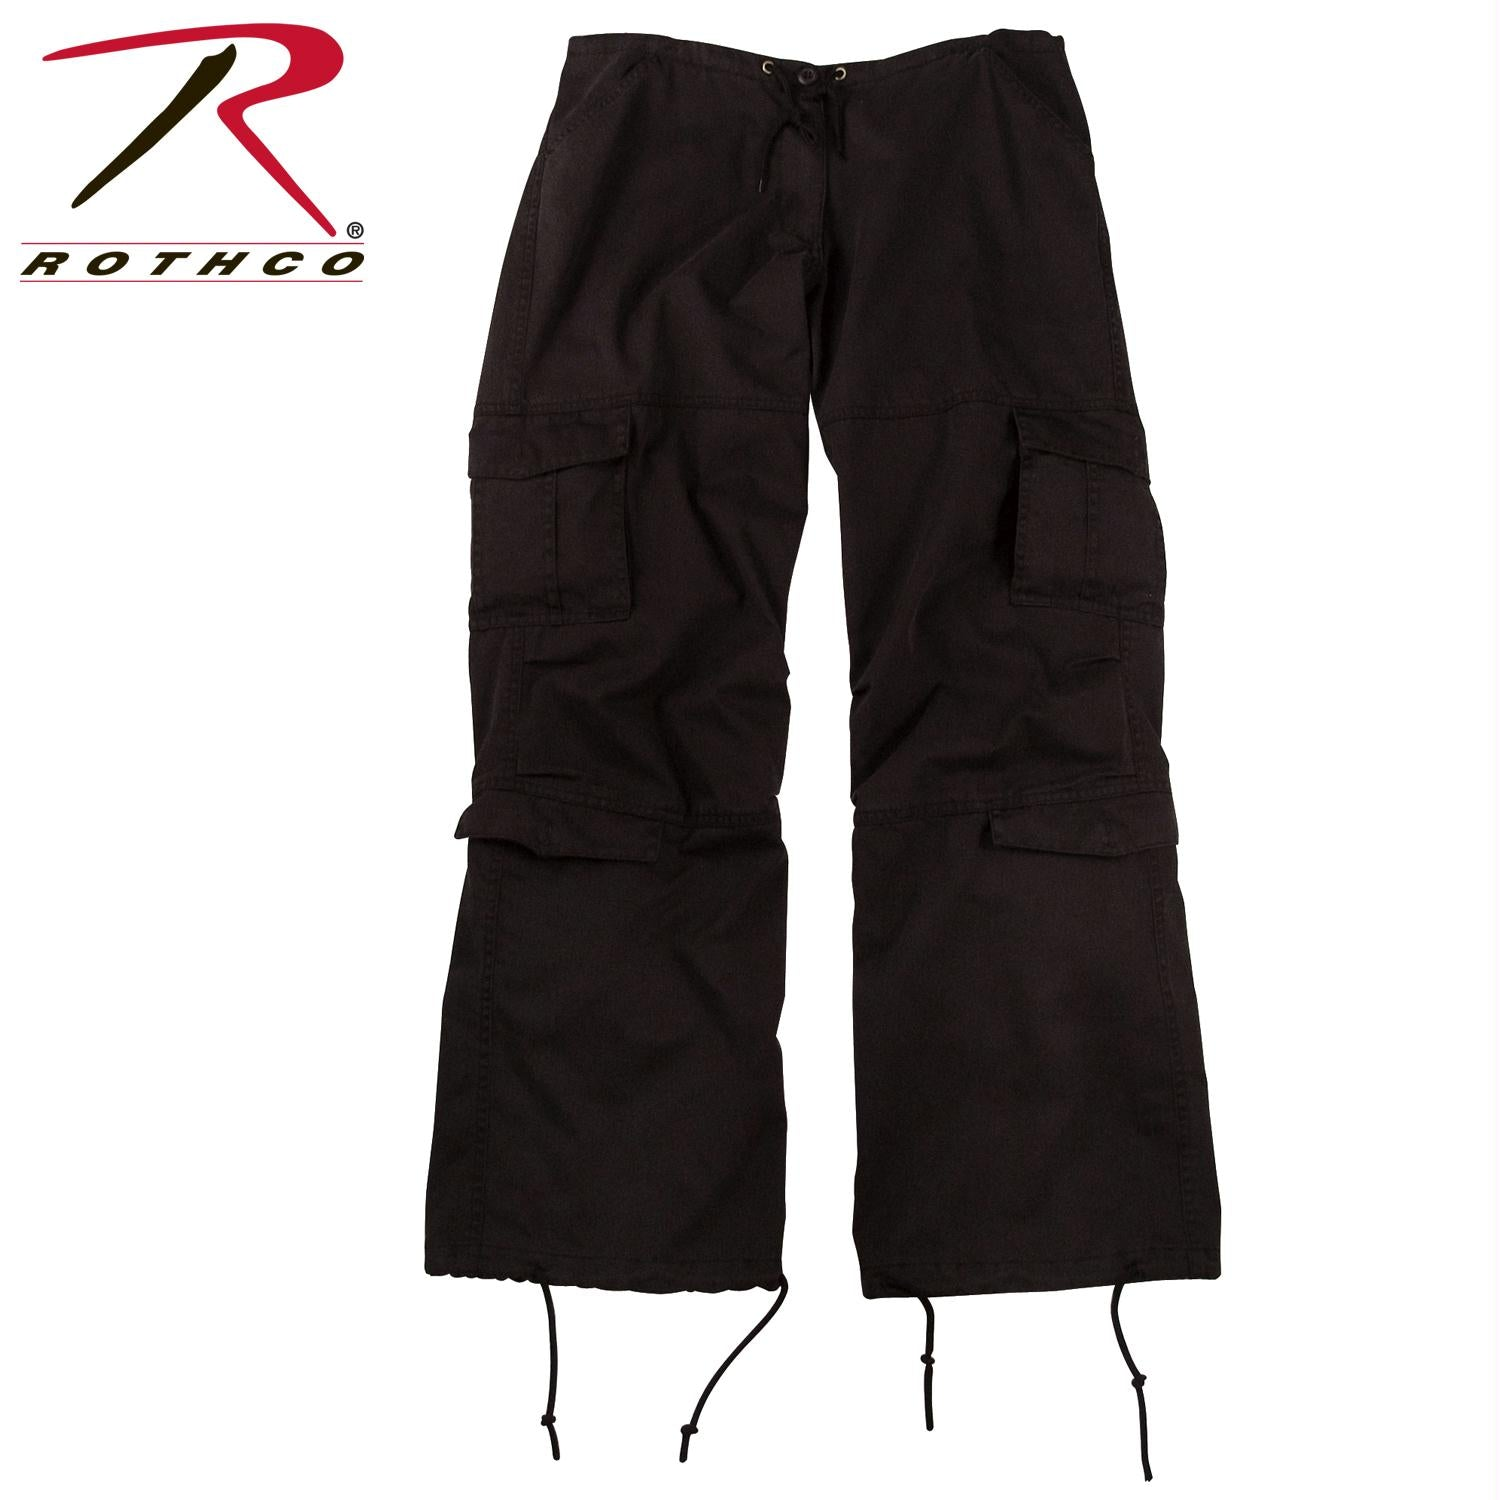 Rothco Women's Vintage Paratrooper Fatigue Pants - Black / S